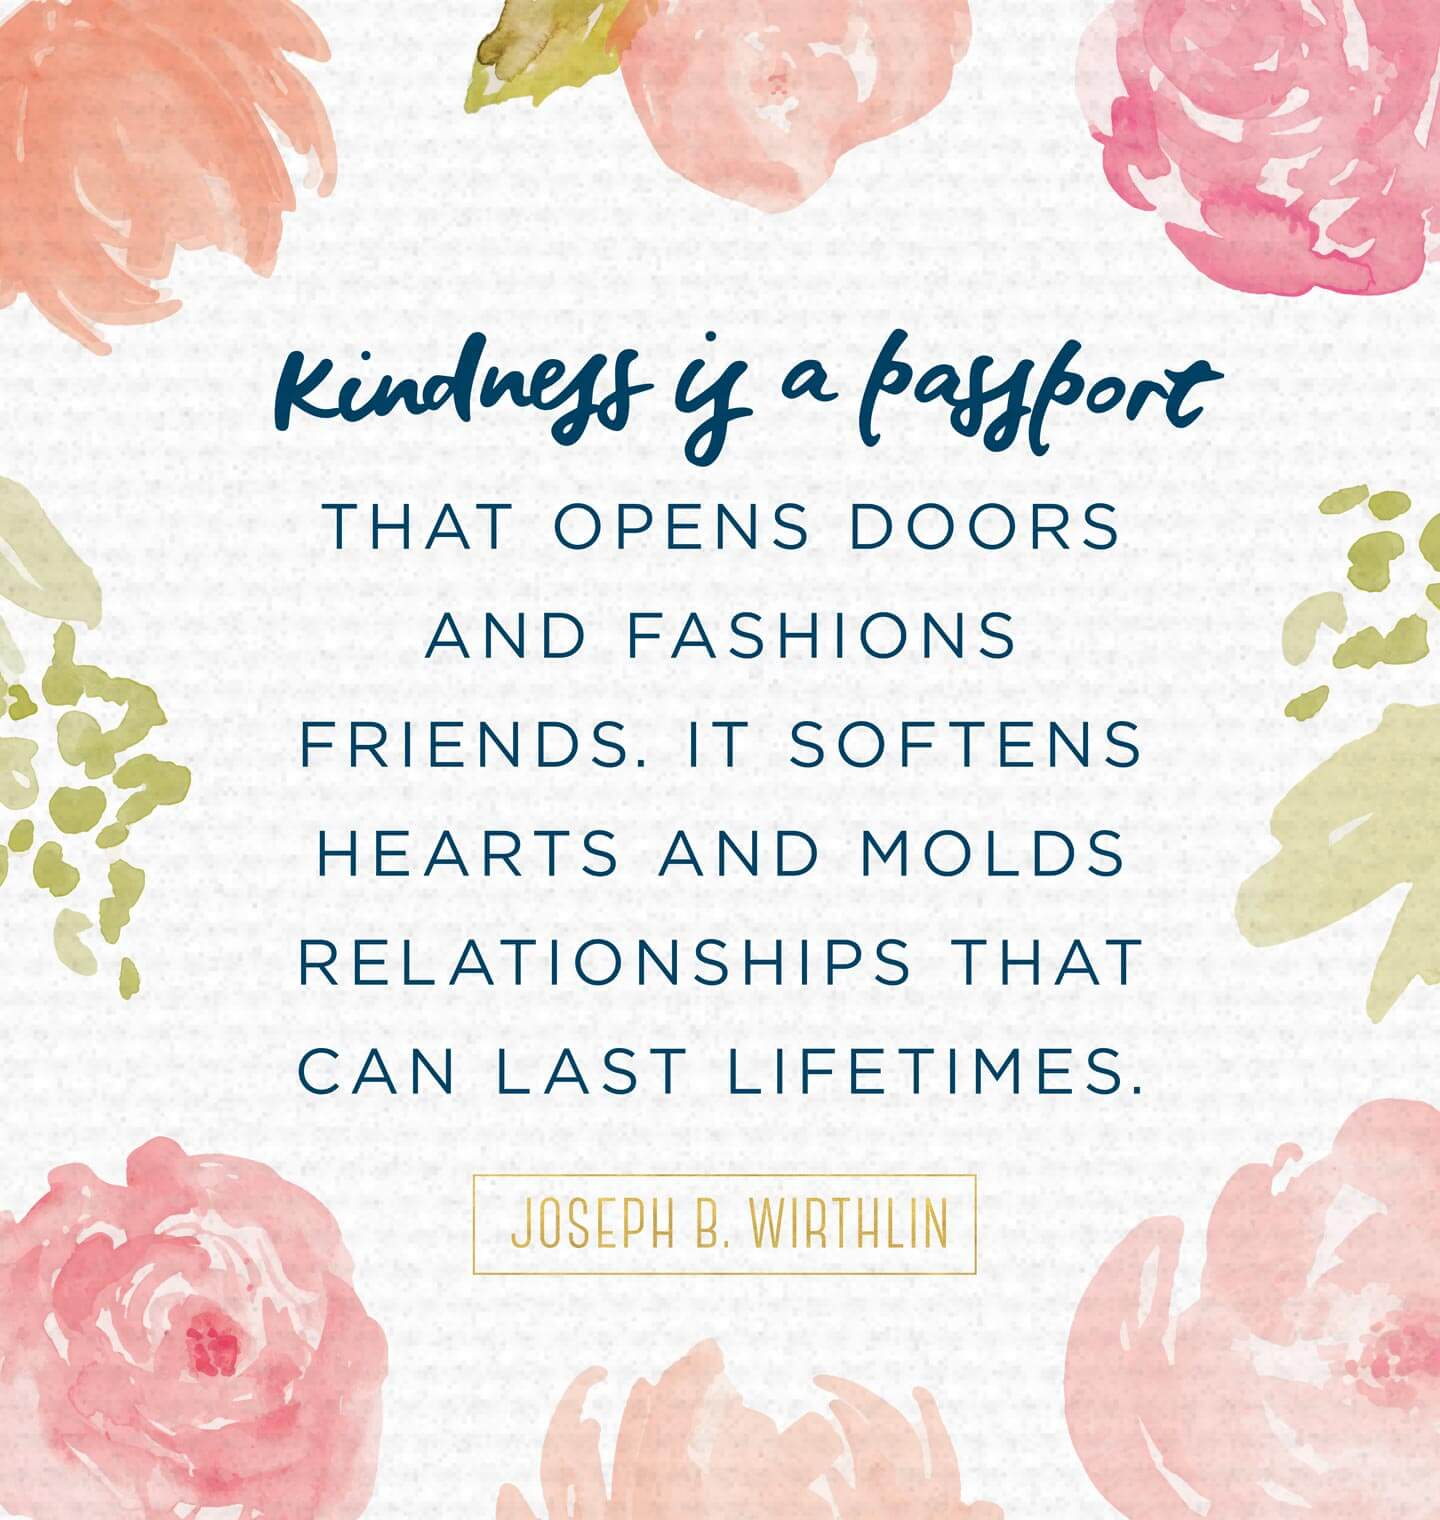 kindness-quote-4